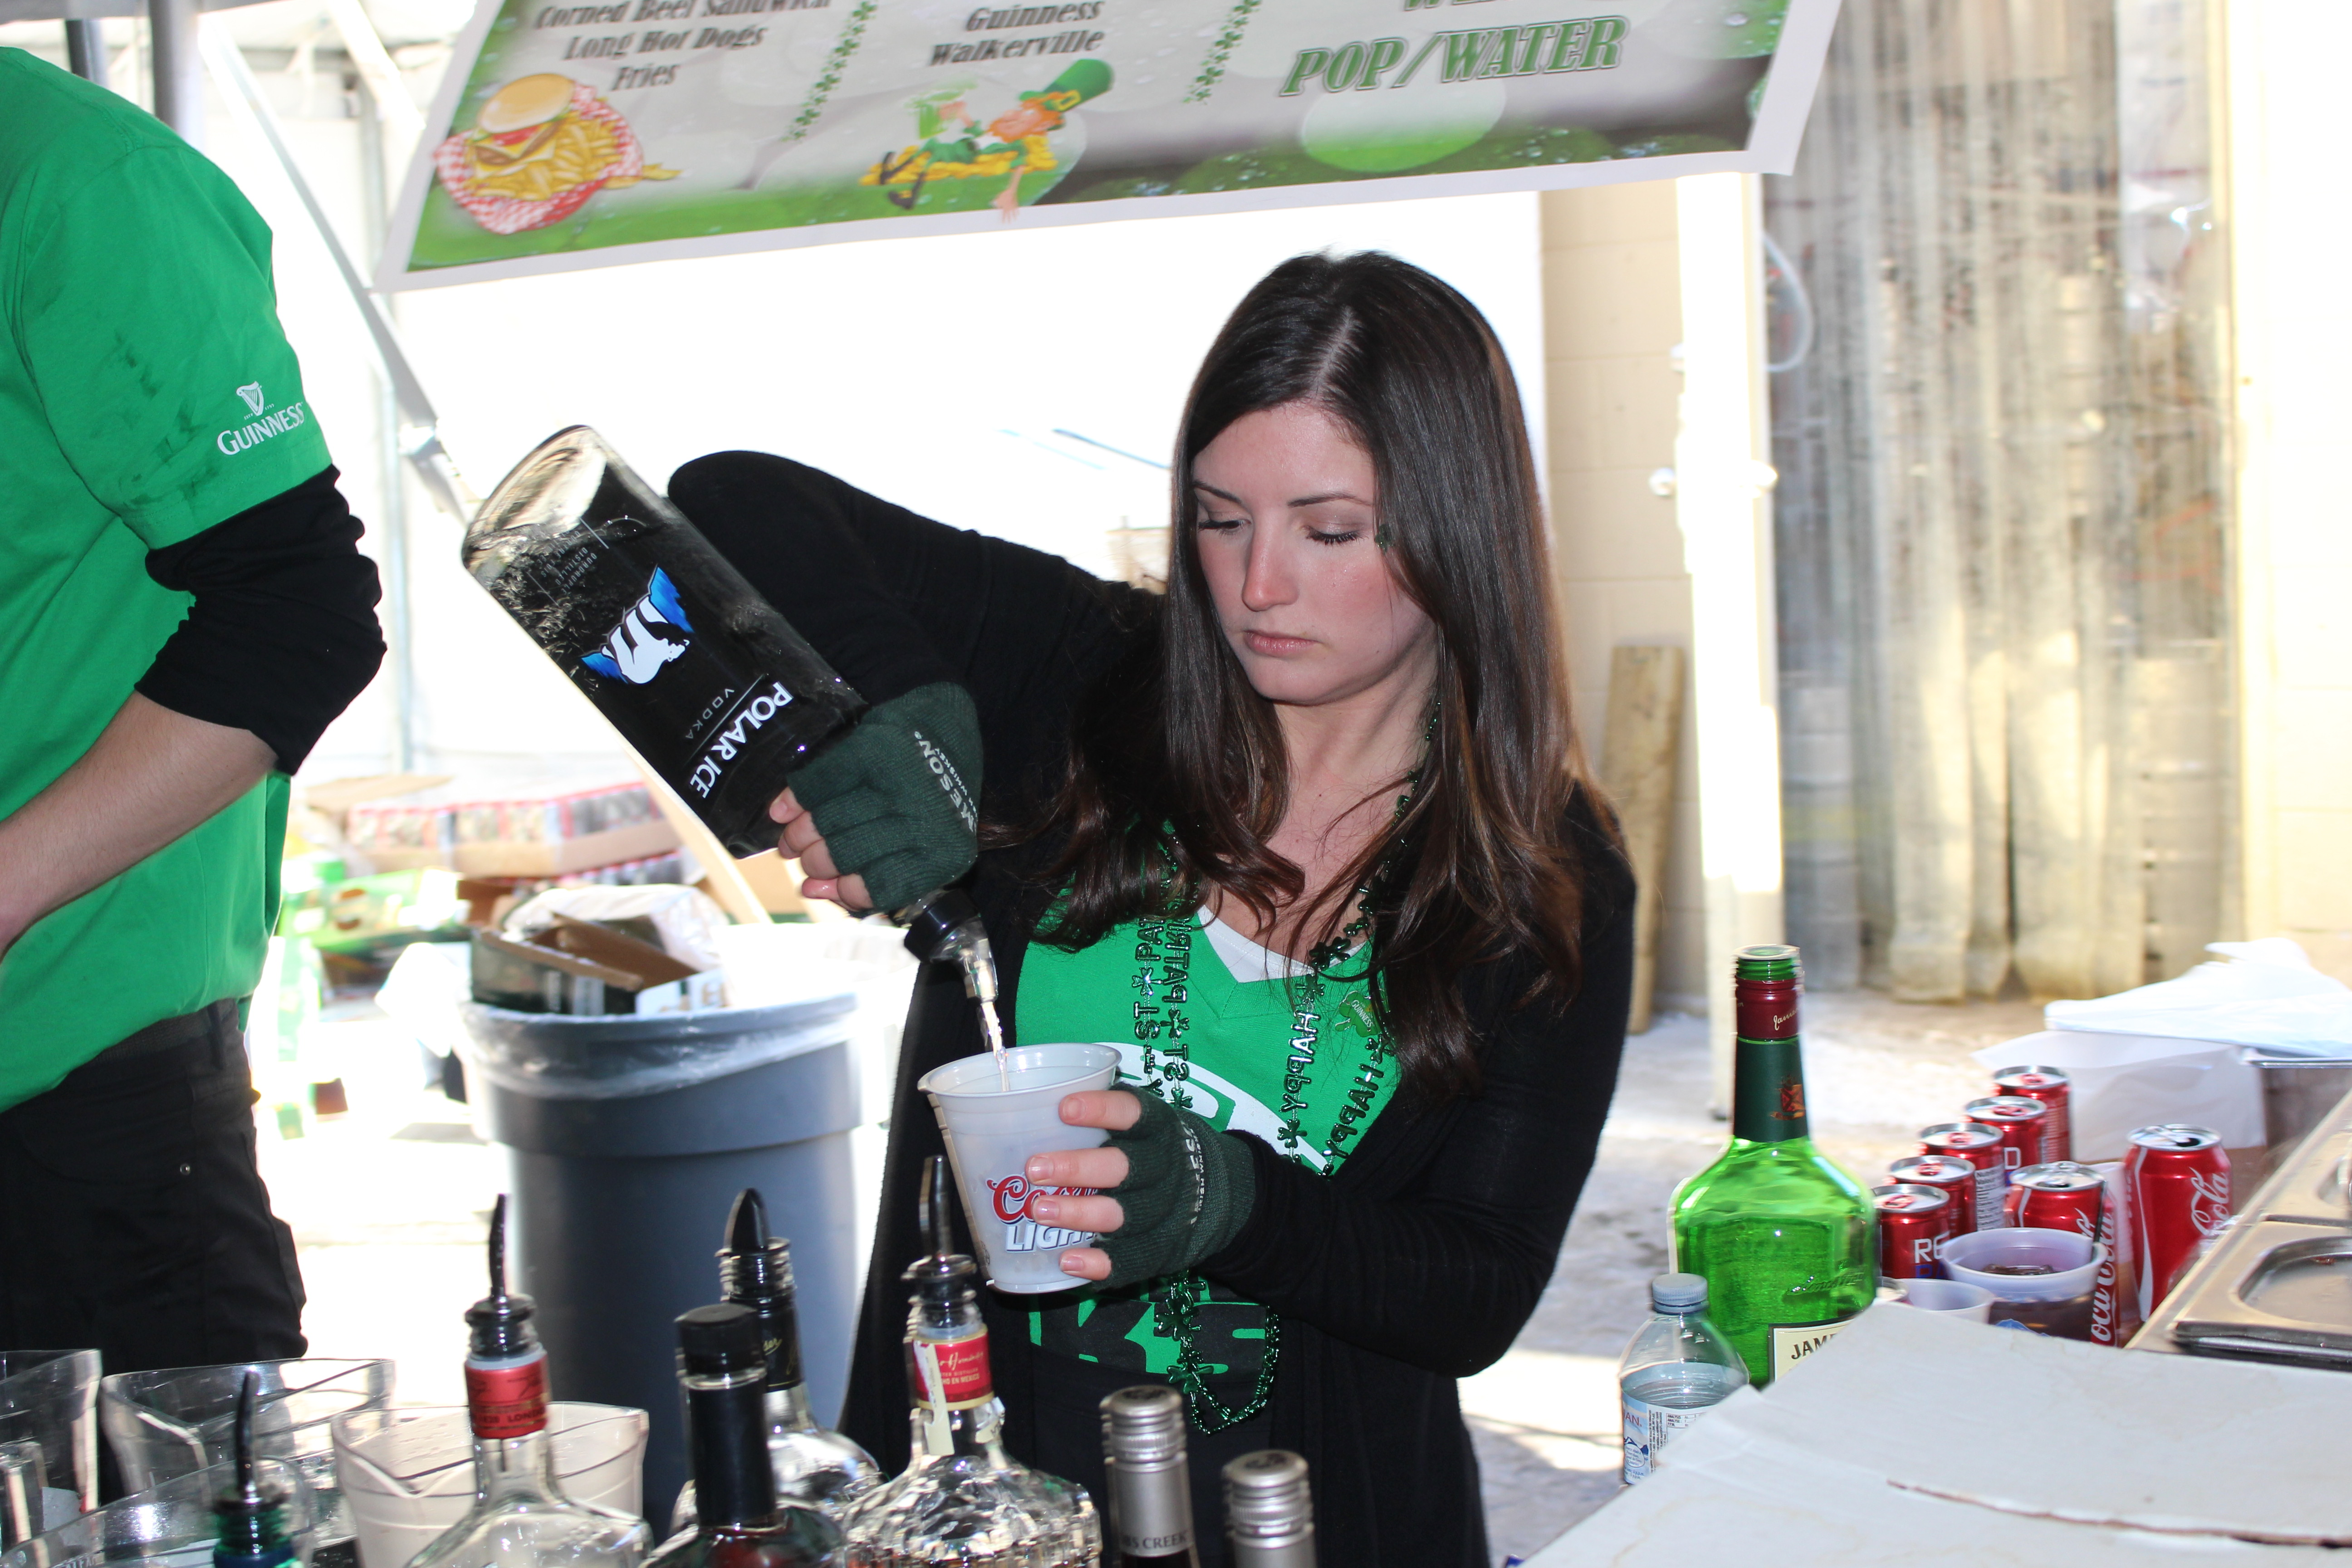 Staff working at Maggio's Kildare House in Windsor on St. Patrick's Day Tuesday March 17, 2015. (Photo by Adelle Loiselle)